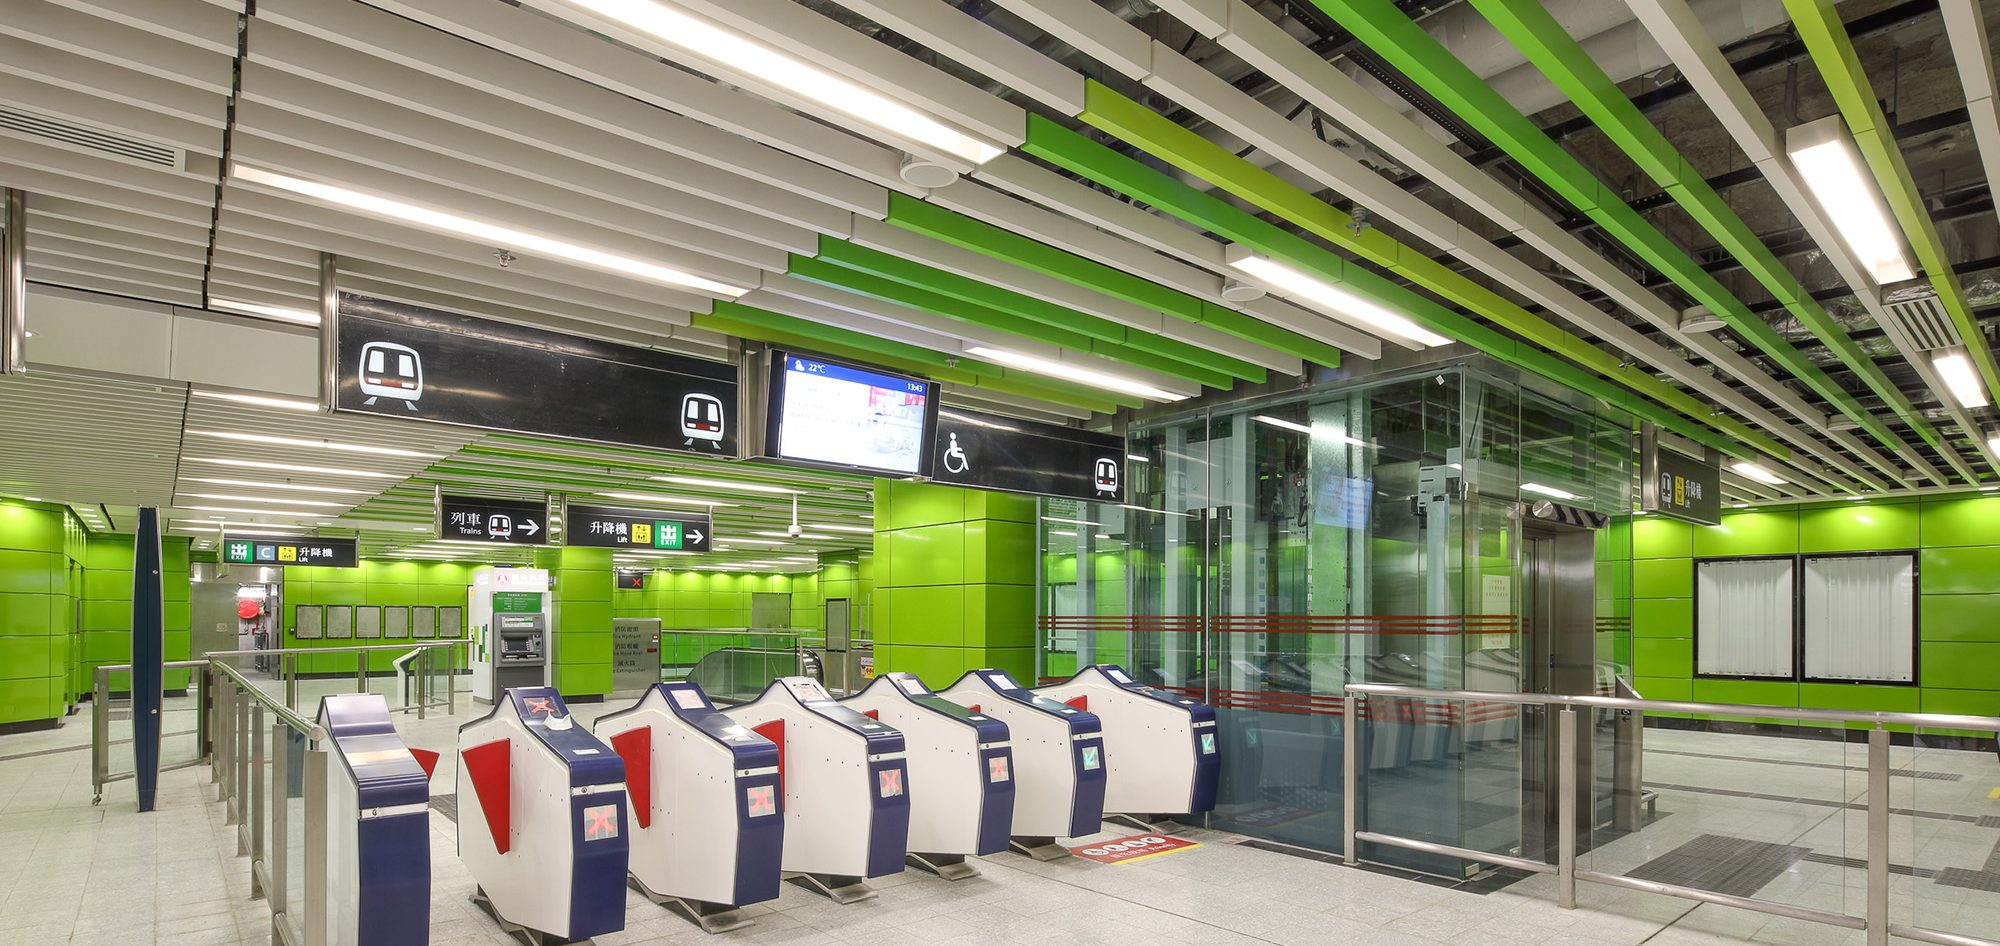 South Horizons Station, MTR South Island Line (East)